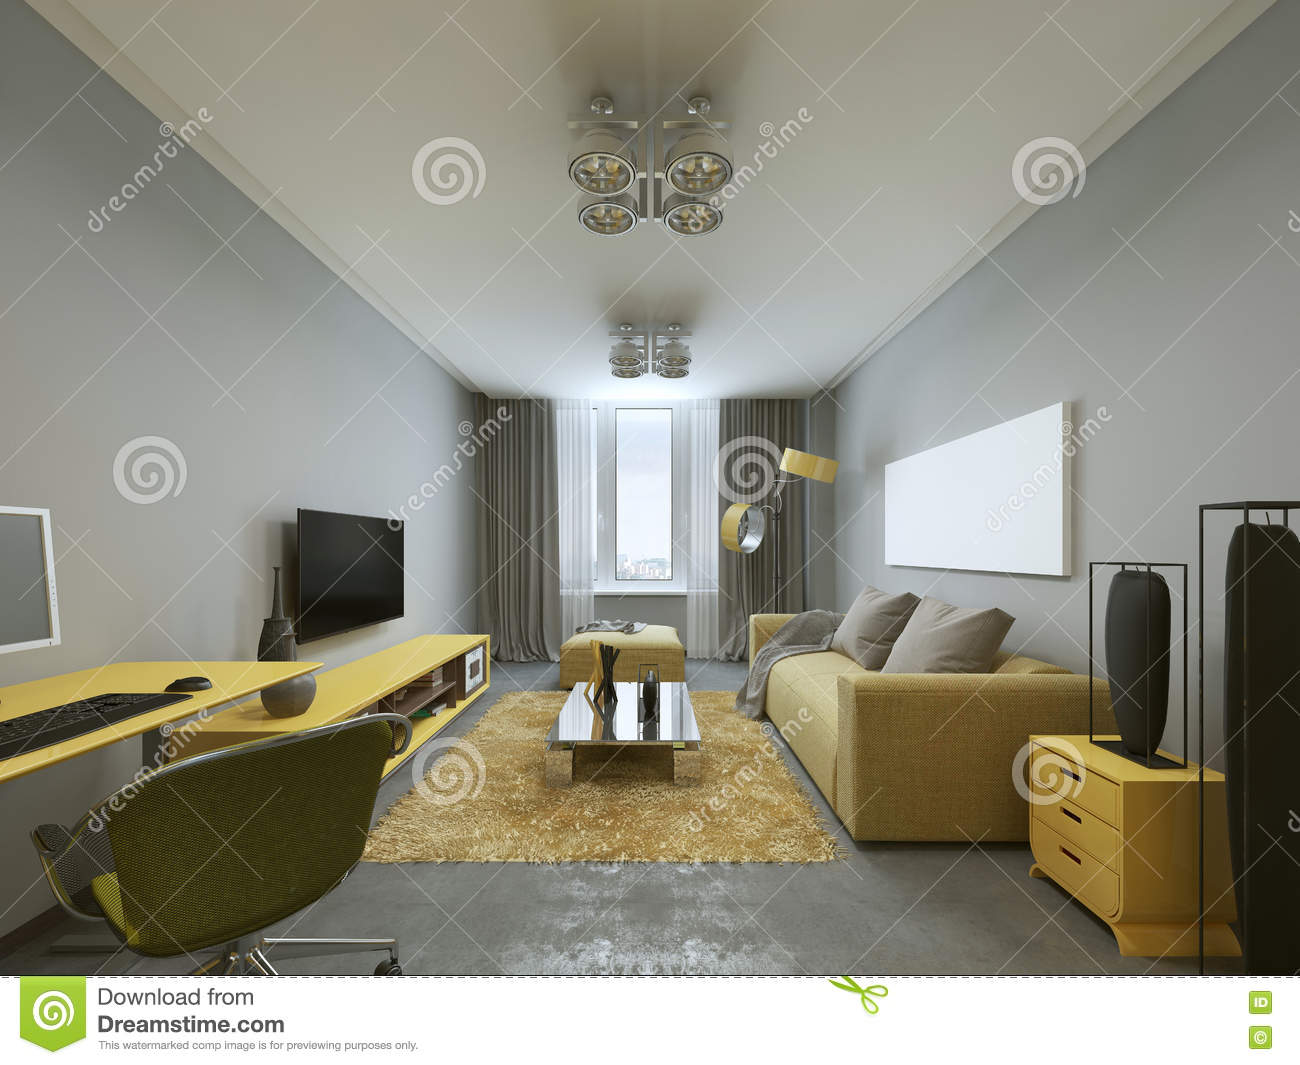 Design modern living room in grey and yellow colors 3d render